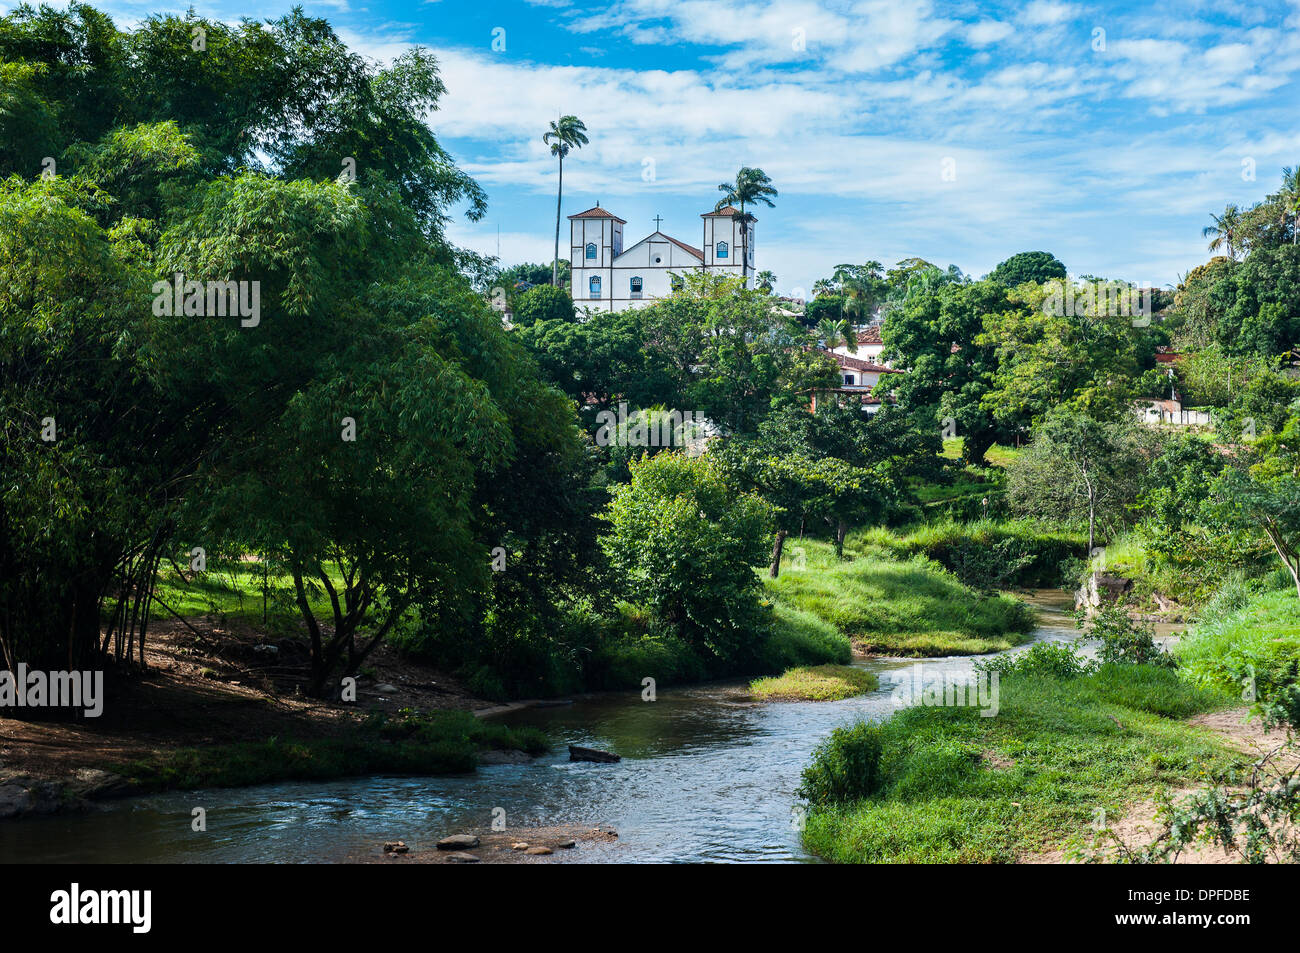 Matrix Church of Our Lady of the Rosary behind a pretty lush landscape in the historic village of Pirenopolis, Goais, Brazil - Stock Image